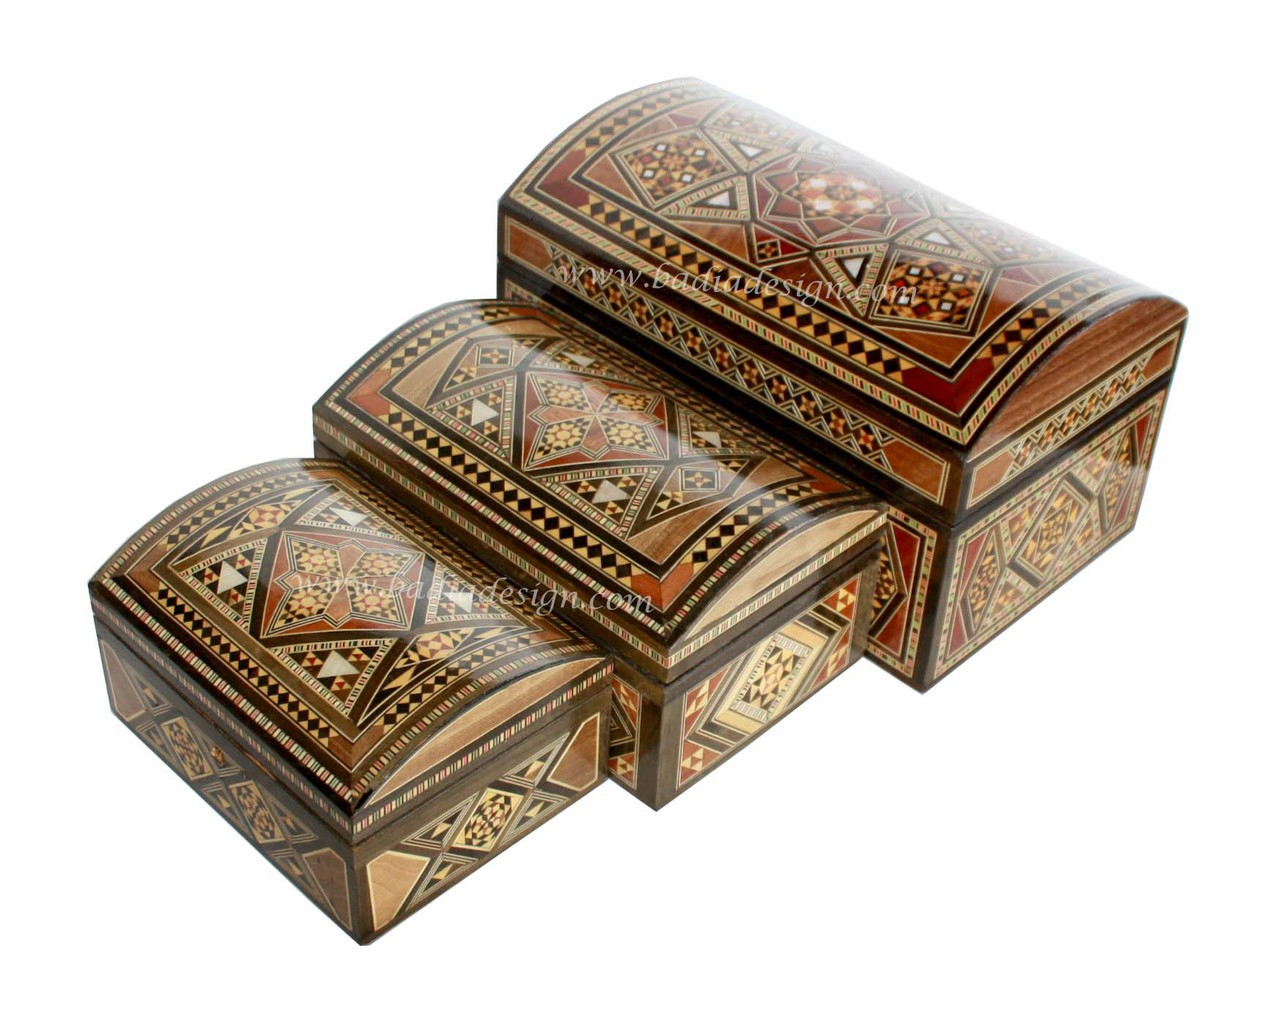 Big W Jewellery Box Inlaid Wooden Jewelry Box With A Syrian Design From Badia